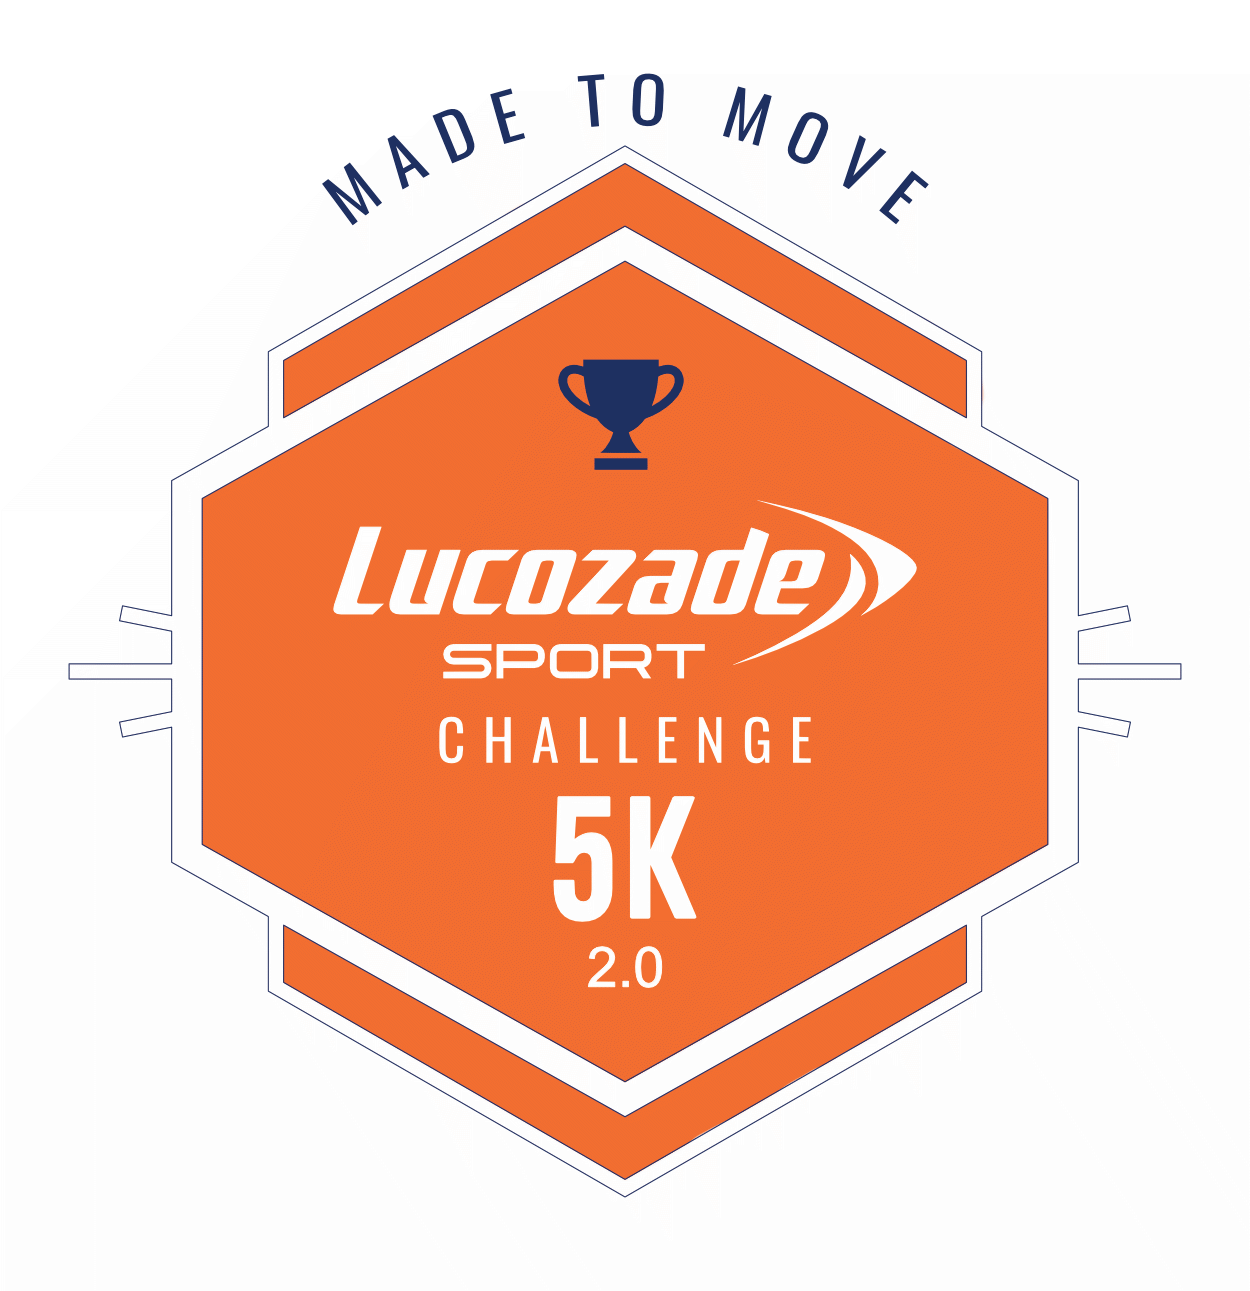 The Lucozade Sport #MadeToMove 2.0 Challenge